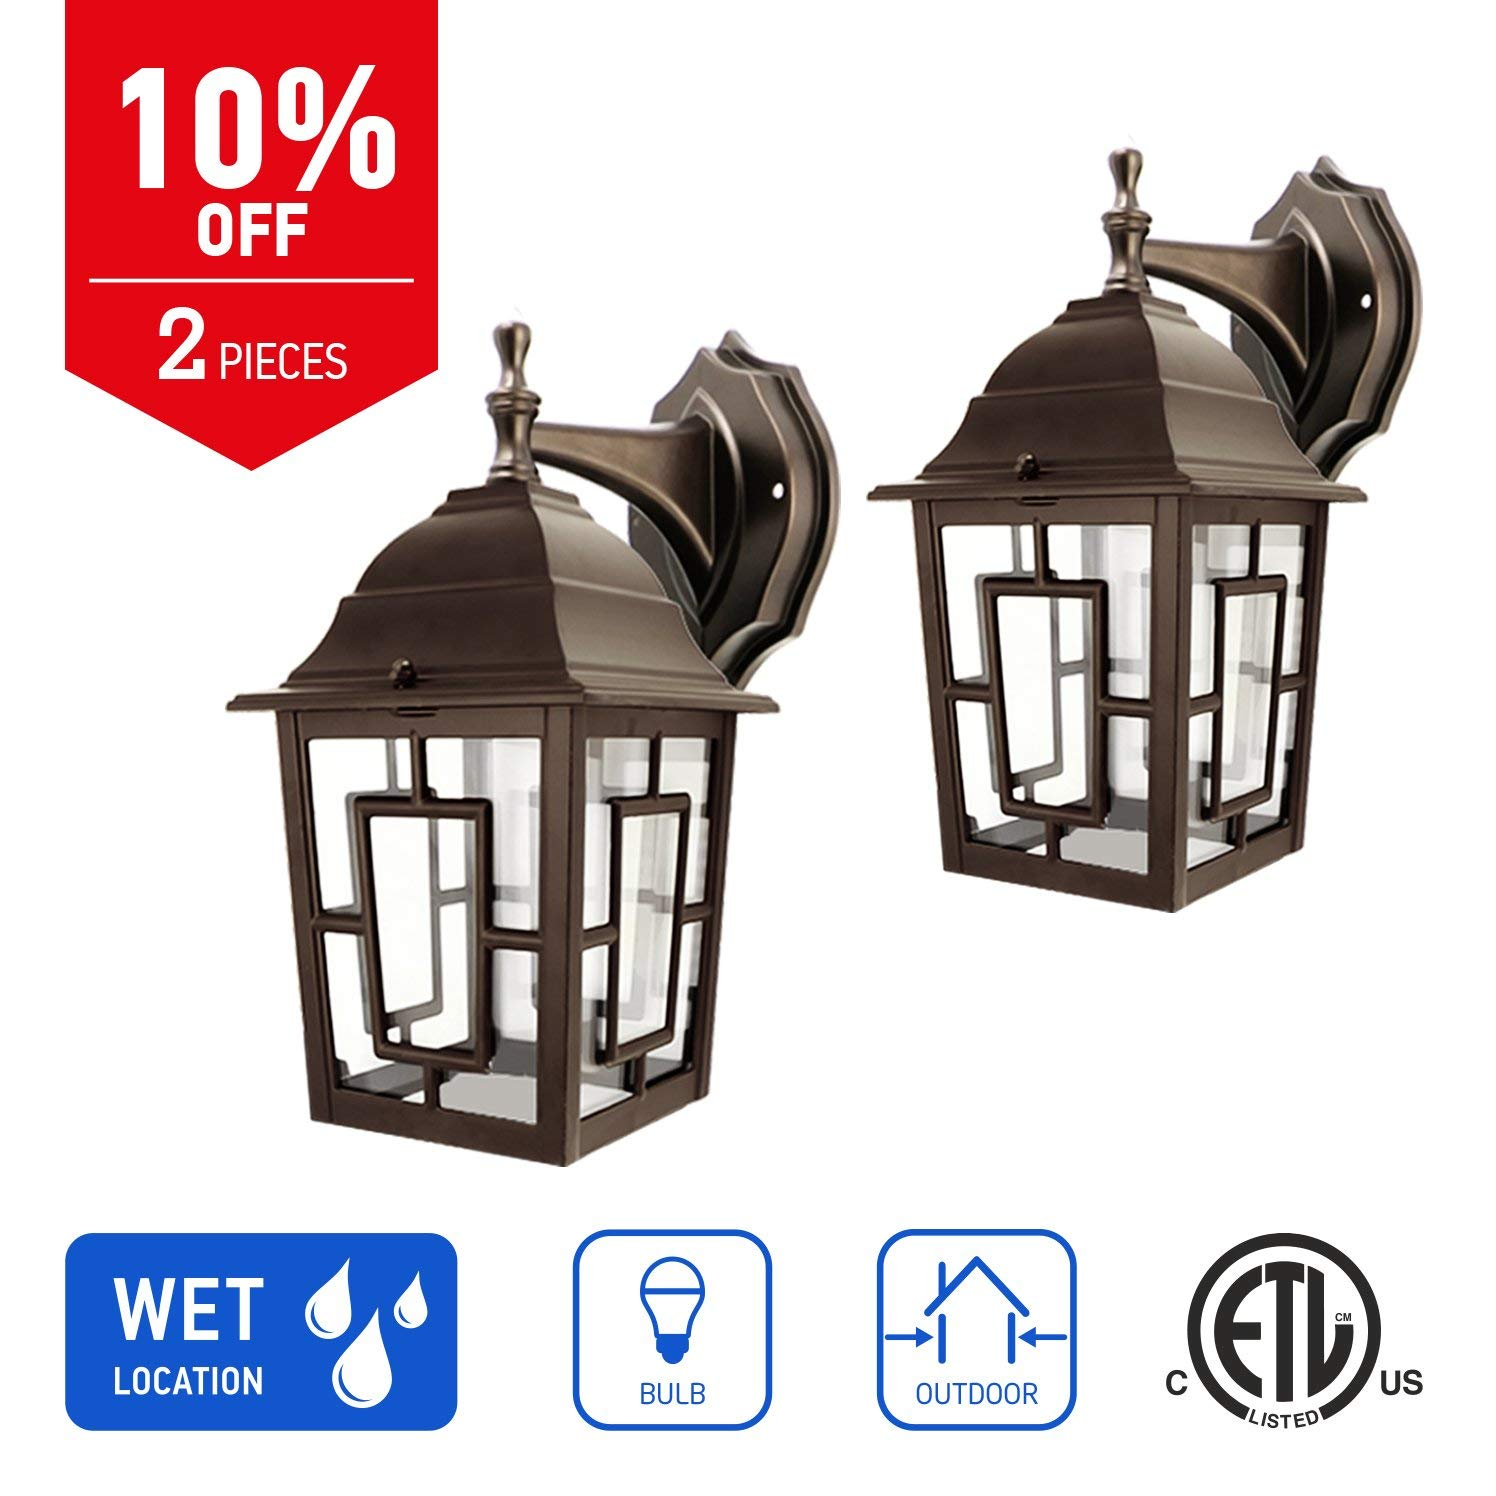 IN HOME 1-Light Outdoor Exterior Wall Down Lantern, Traditional Porch Patio Lighting Fixture L05 with One E26 Base, Water-Proof, Bronze Cast Aluminum Housing, Clear Glass Panels, (2 Pack) ETL Listed